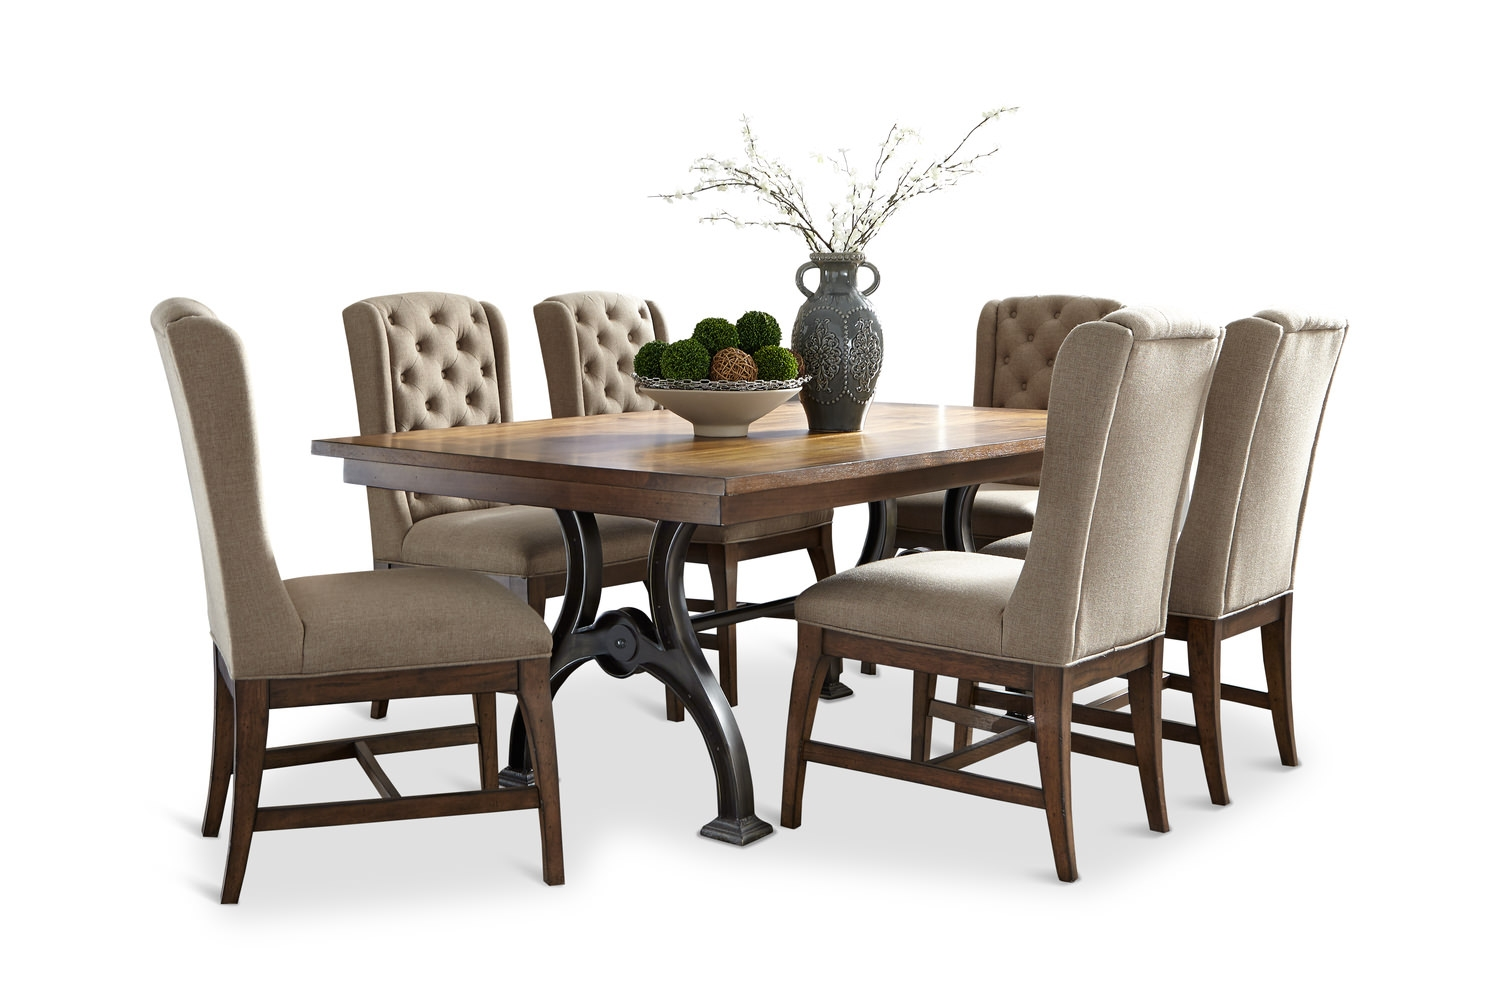 Arlington House Trestle Table With 4 Chairs Hom Furniture Layjao